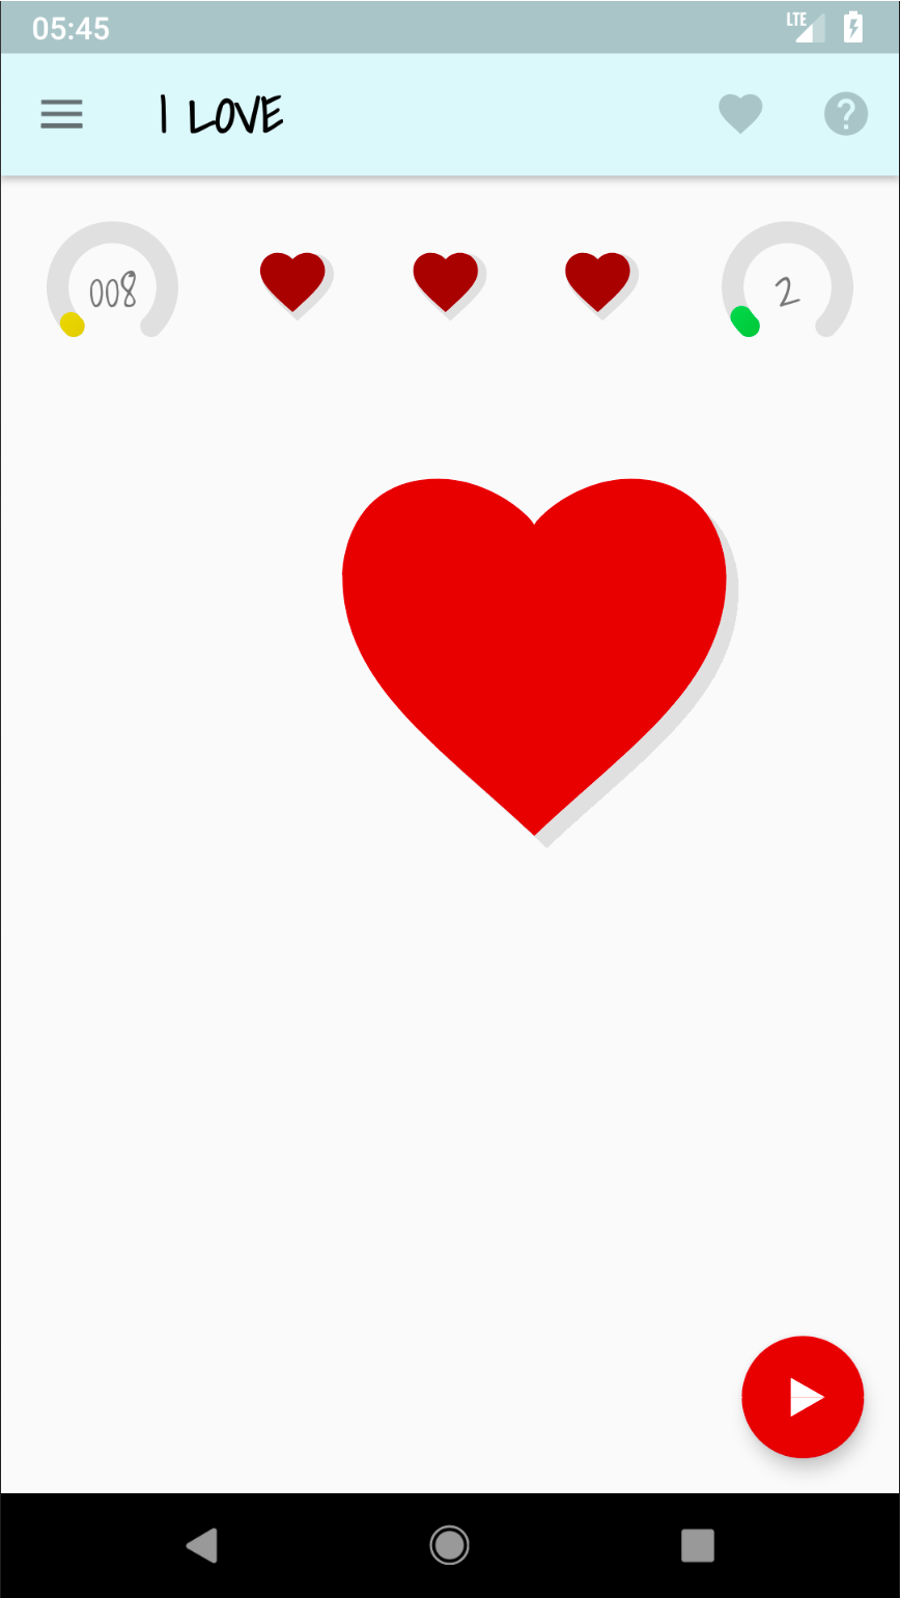 Main screen of I Love